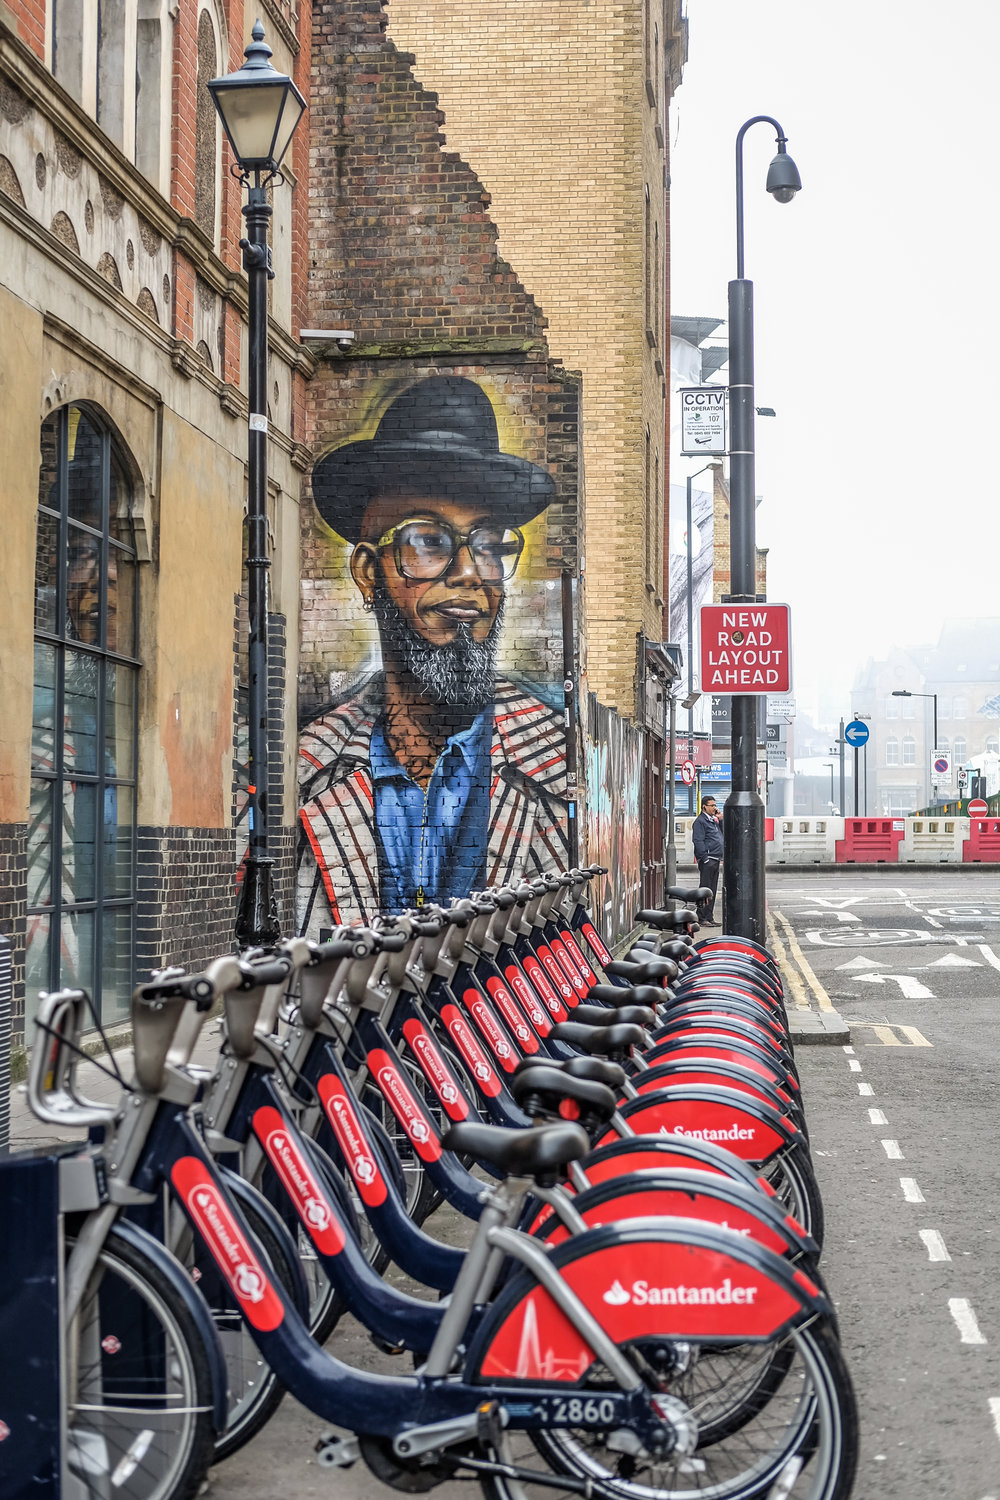 Mural near Spitalfield